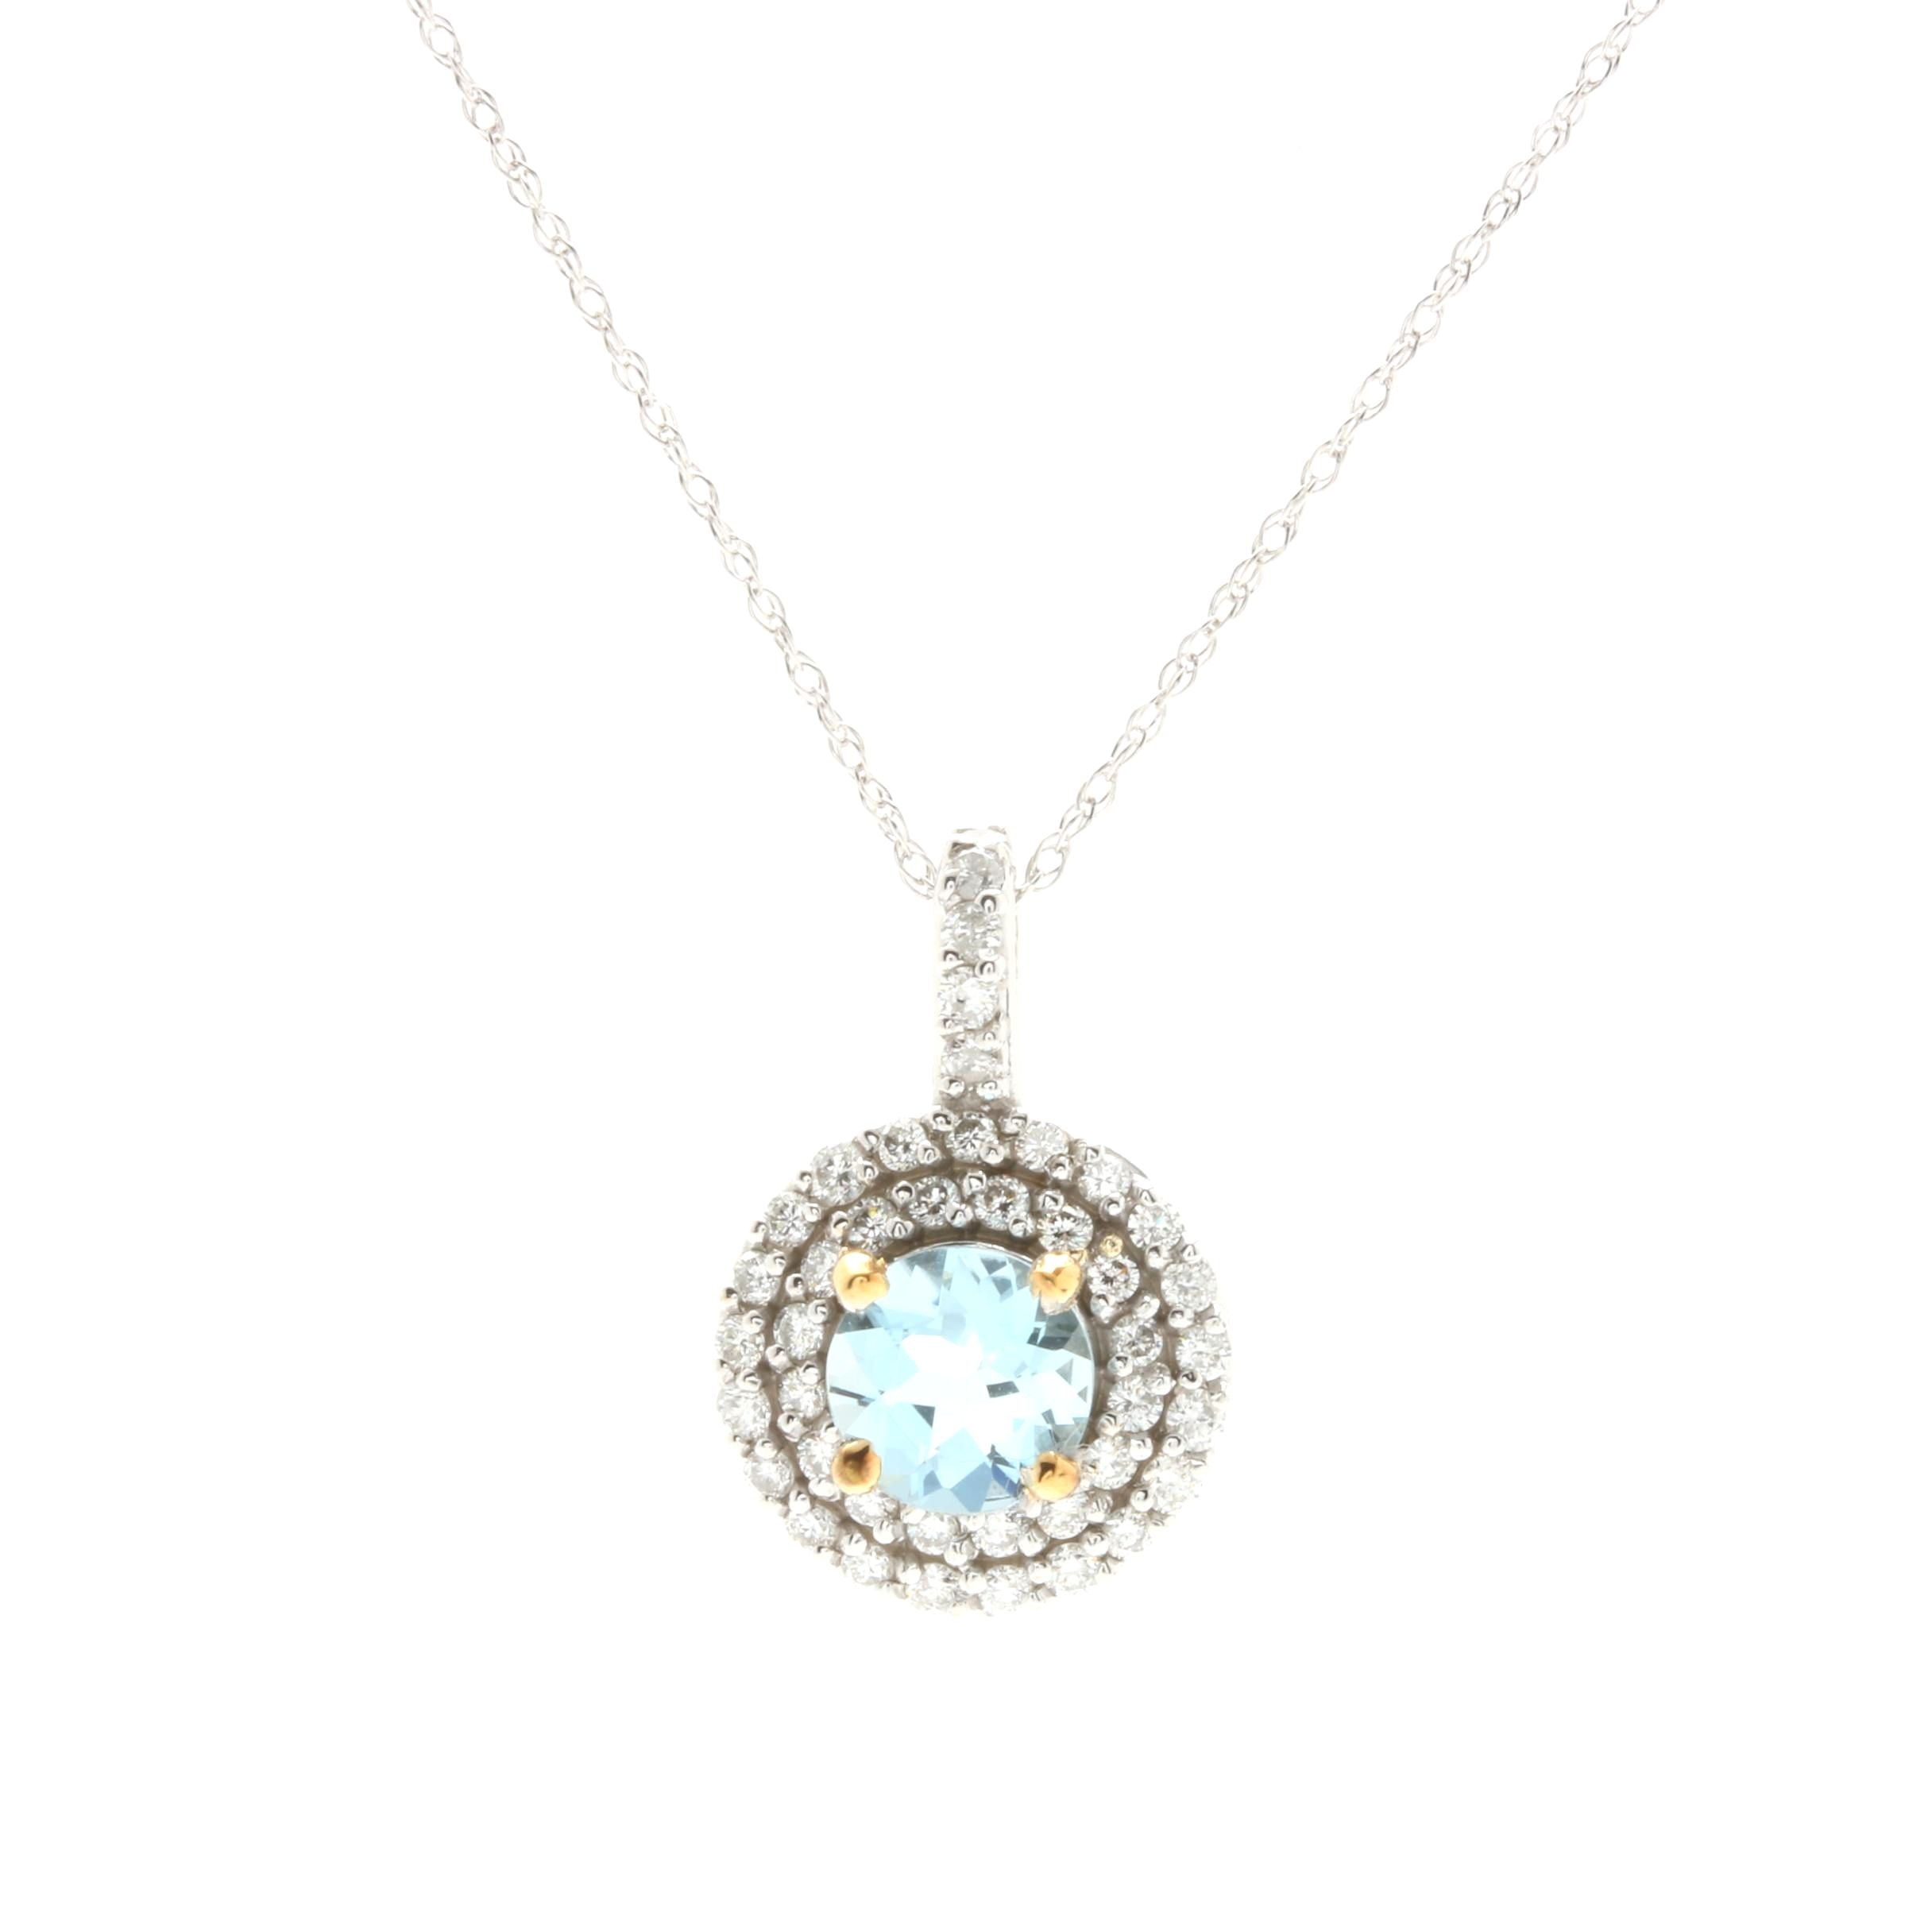 14K White Gold Aquamarine and Diamond Pendant Necklace